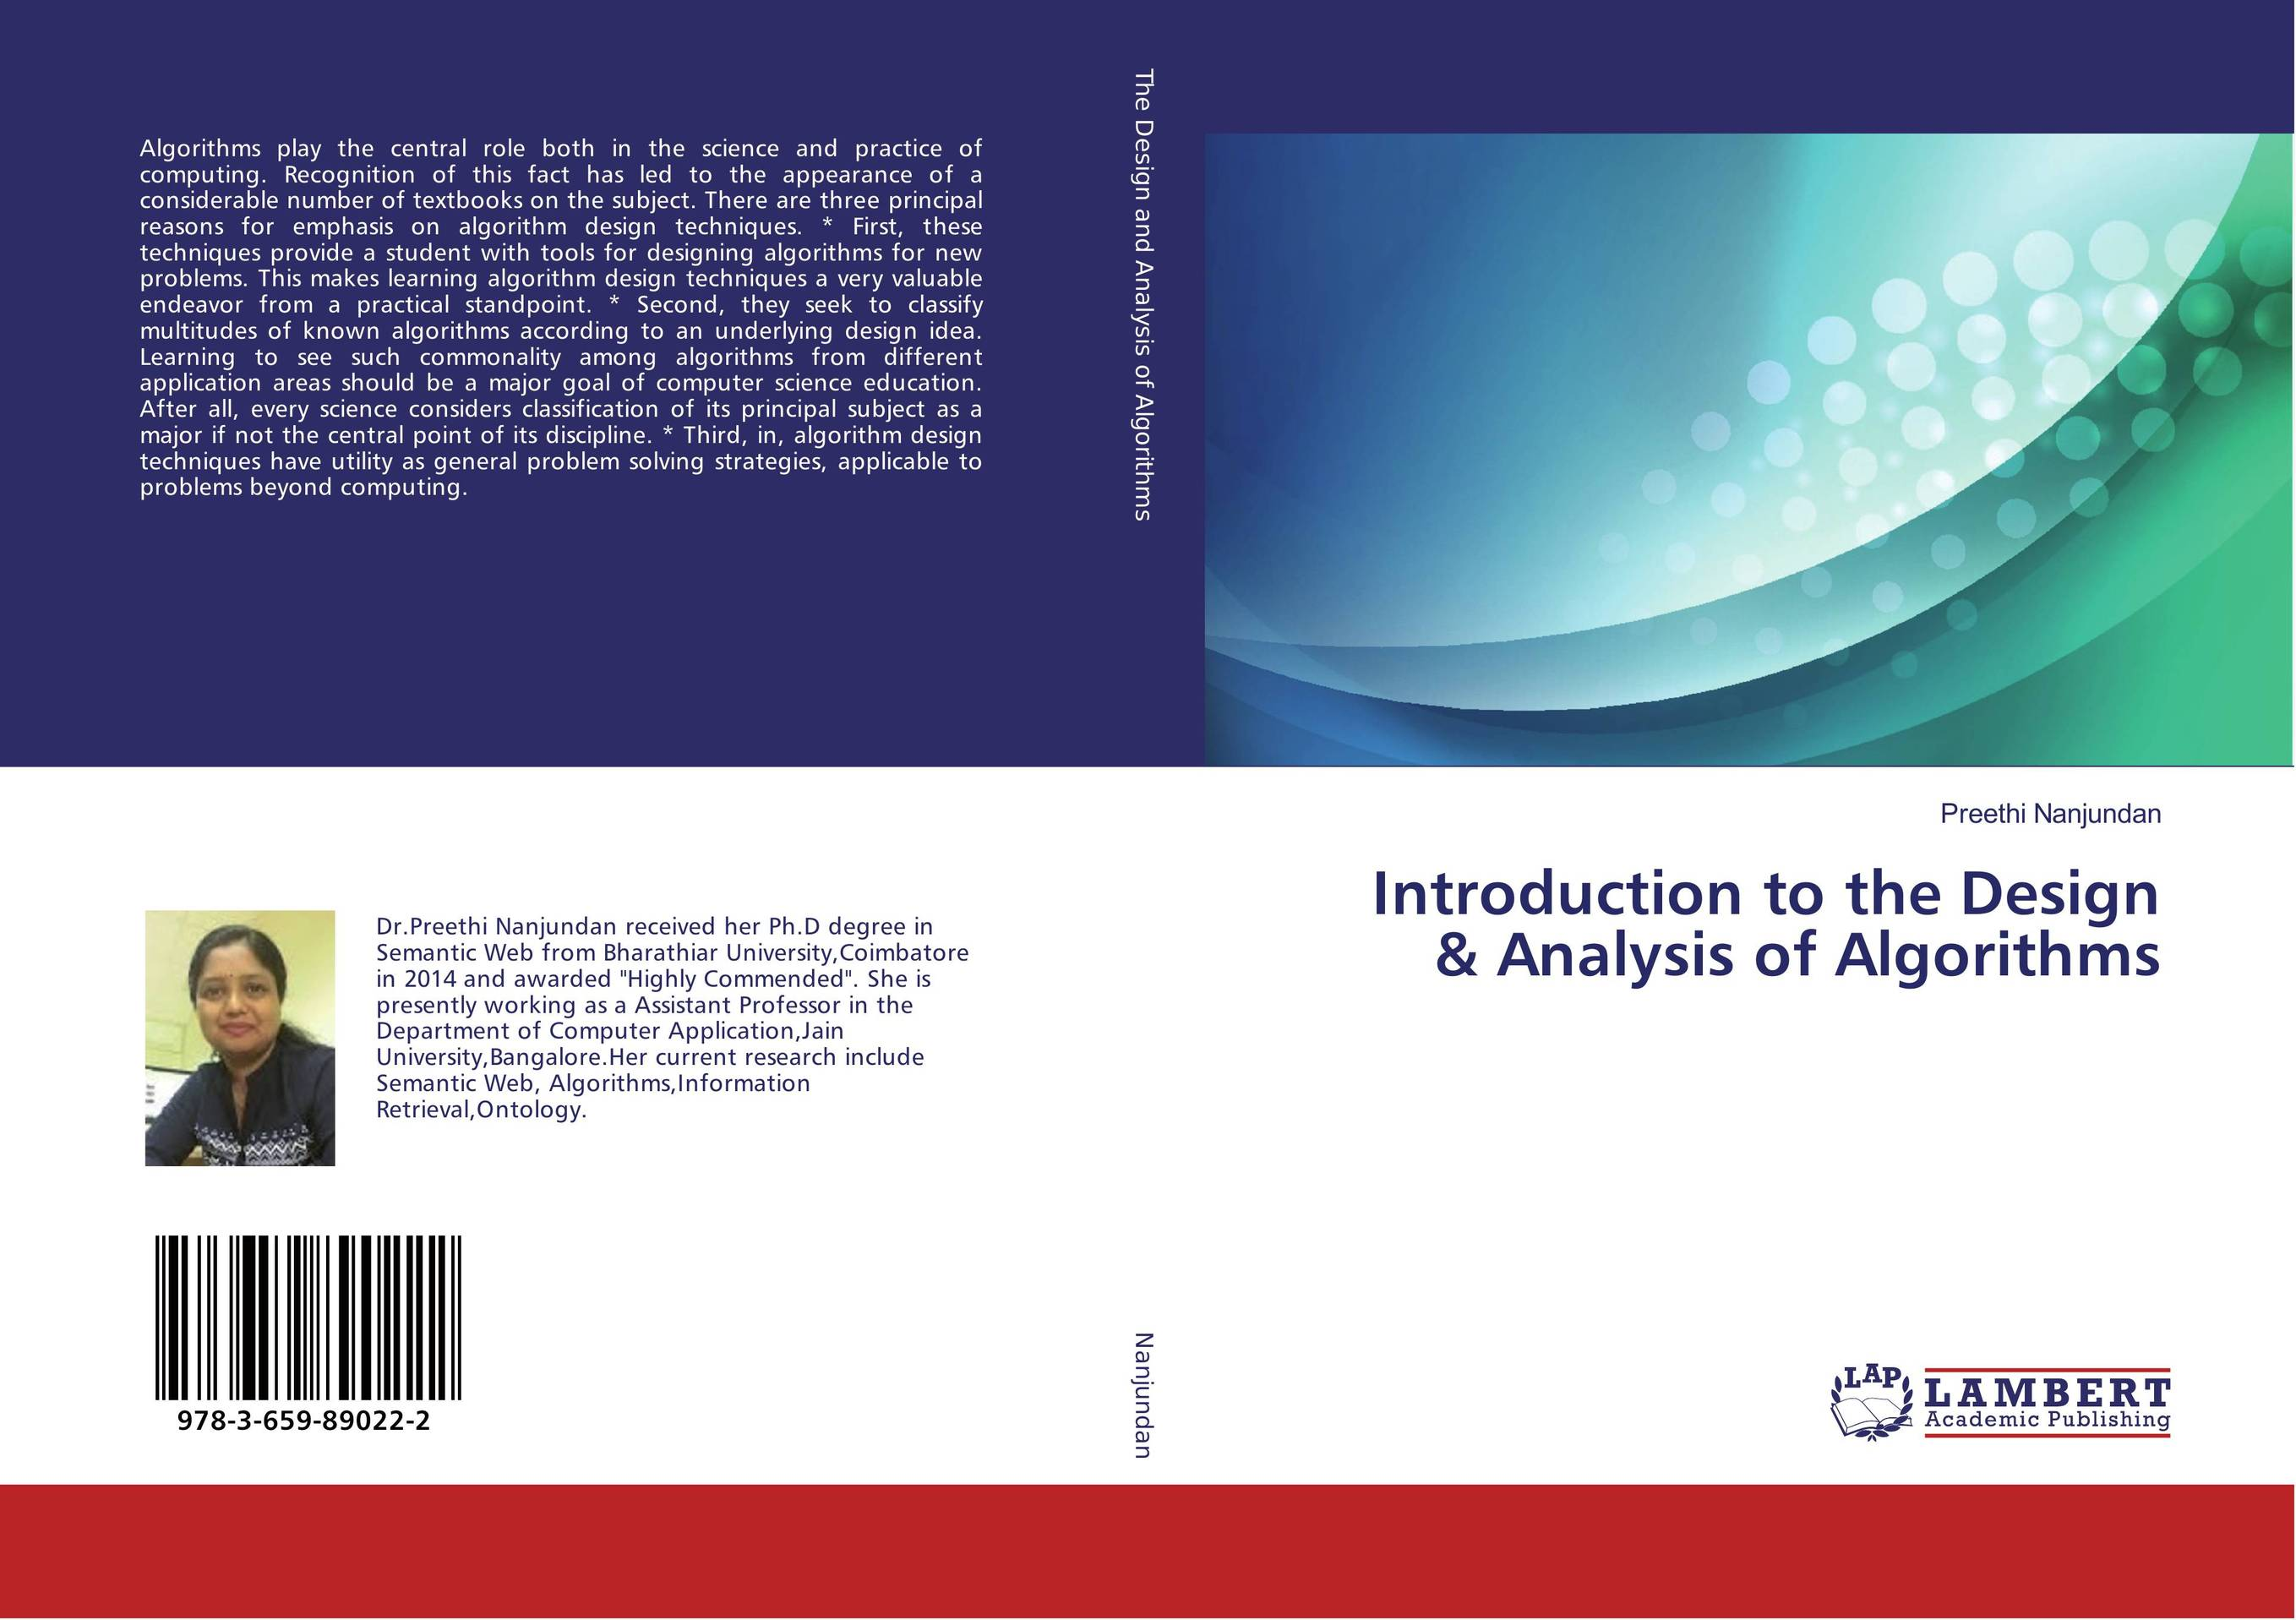 Introduction to the Design & Analysis of Algorithms the role of evaluation as a mechanism for advancing principal practice